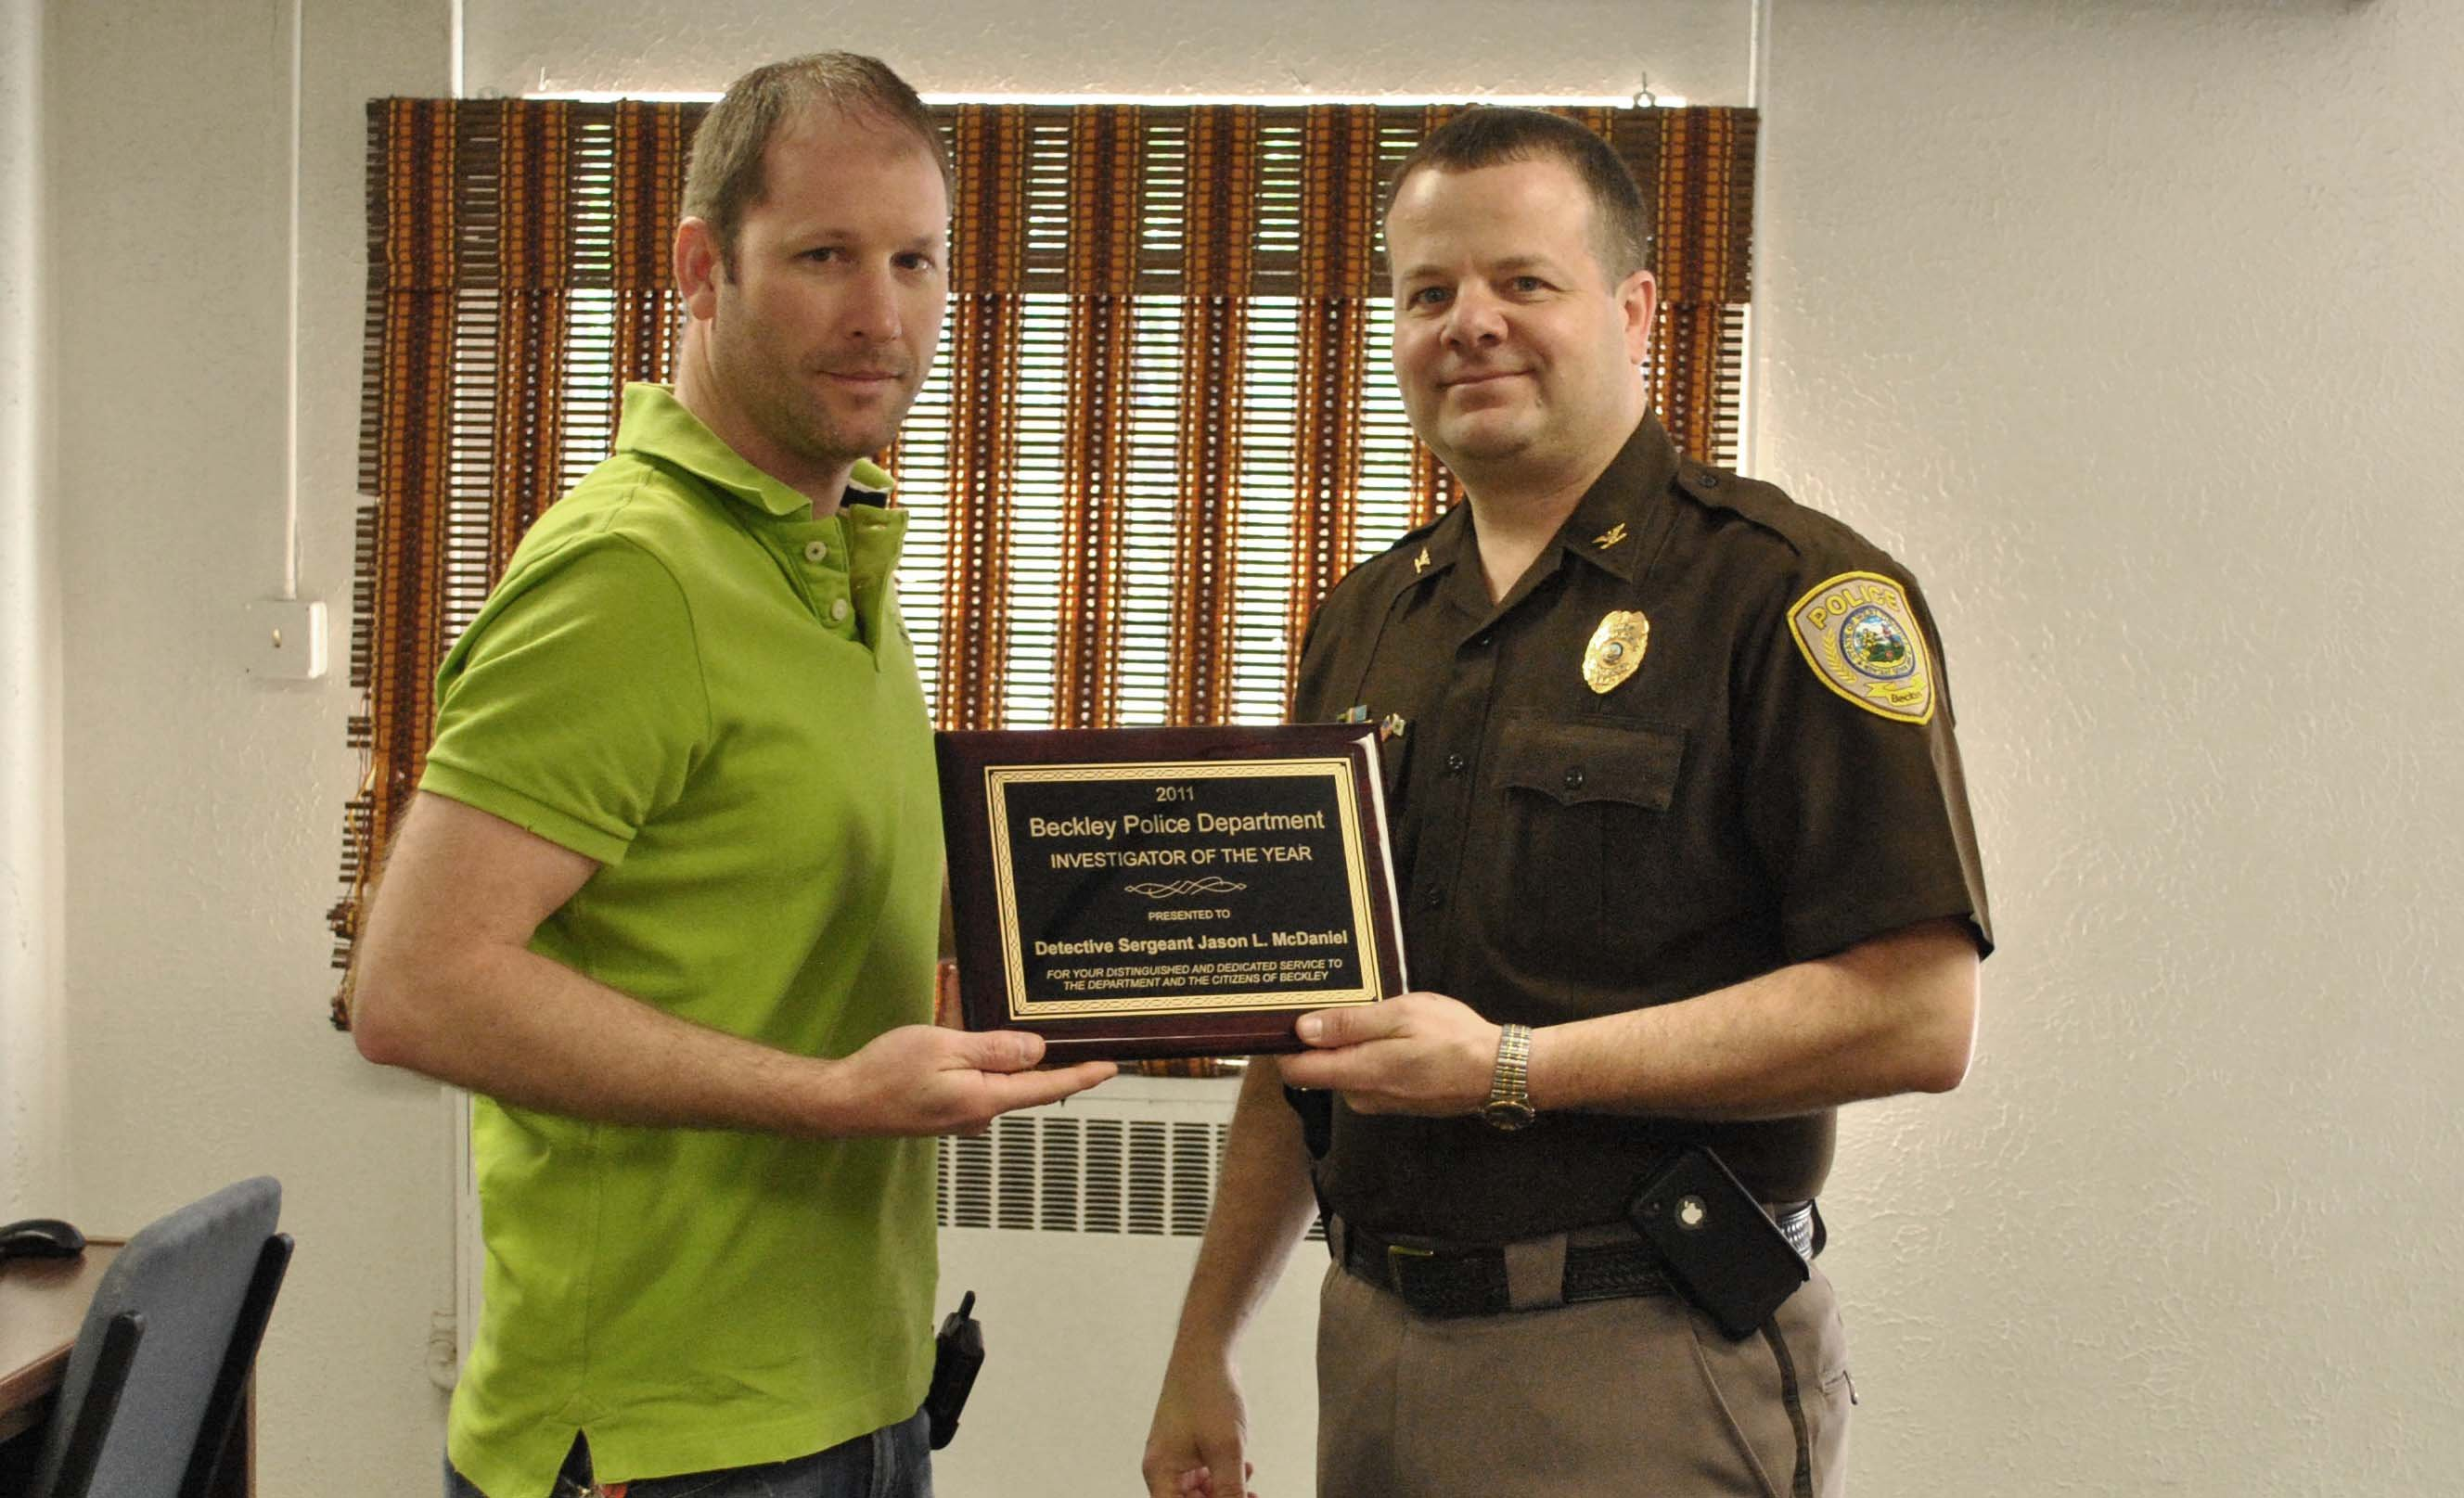 Detective Jason McDaniel, 2011 Investigator of the Year.